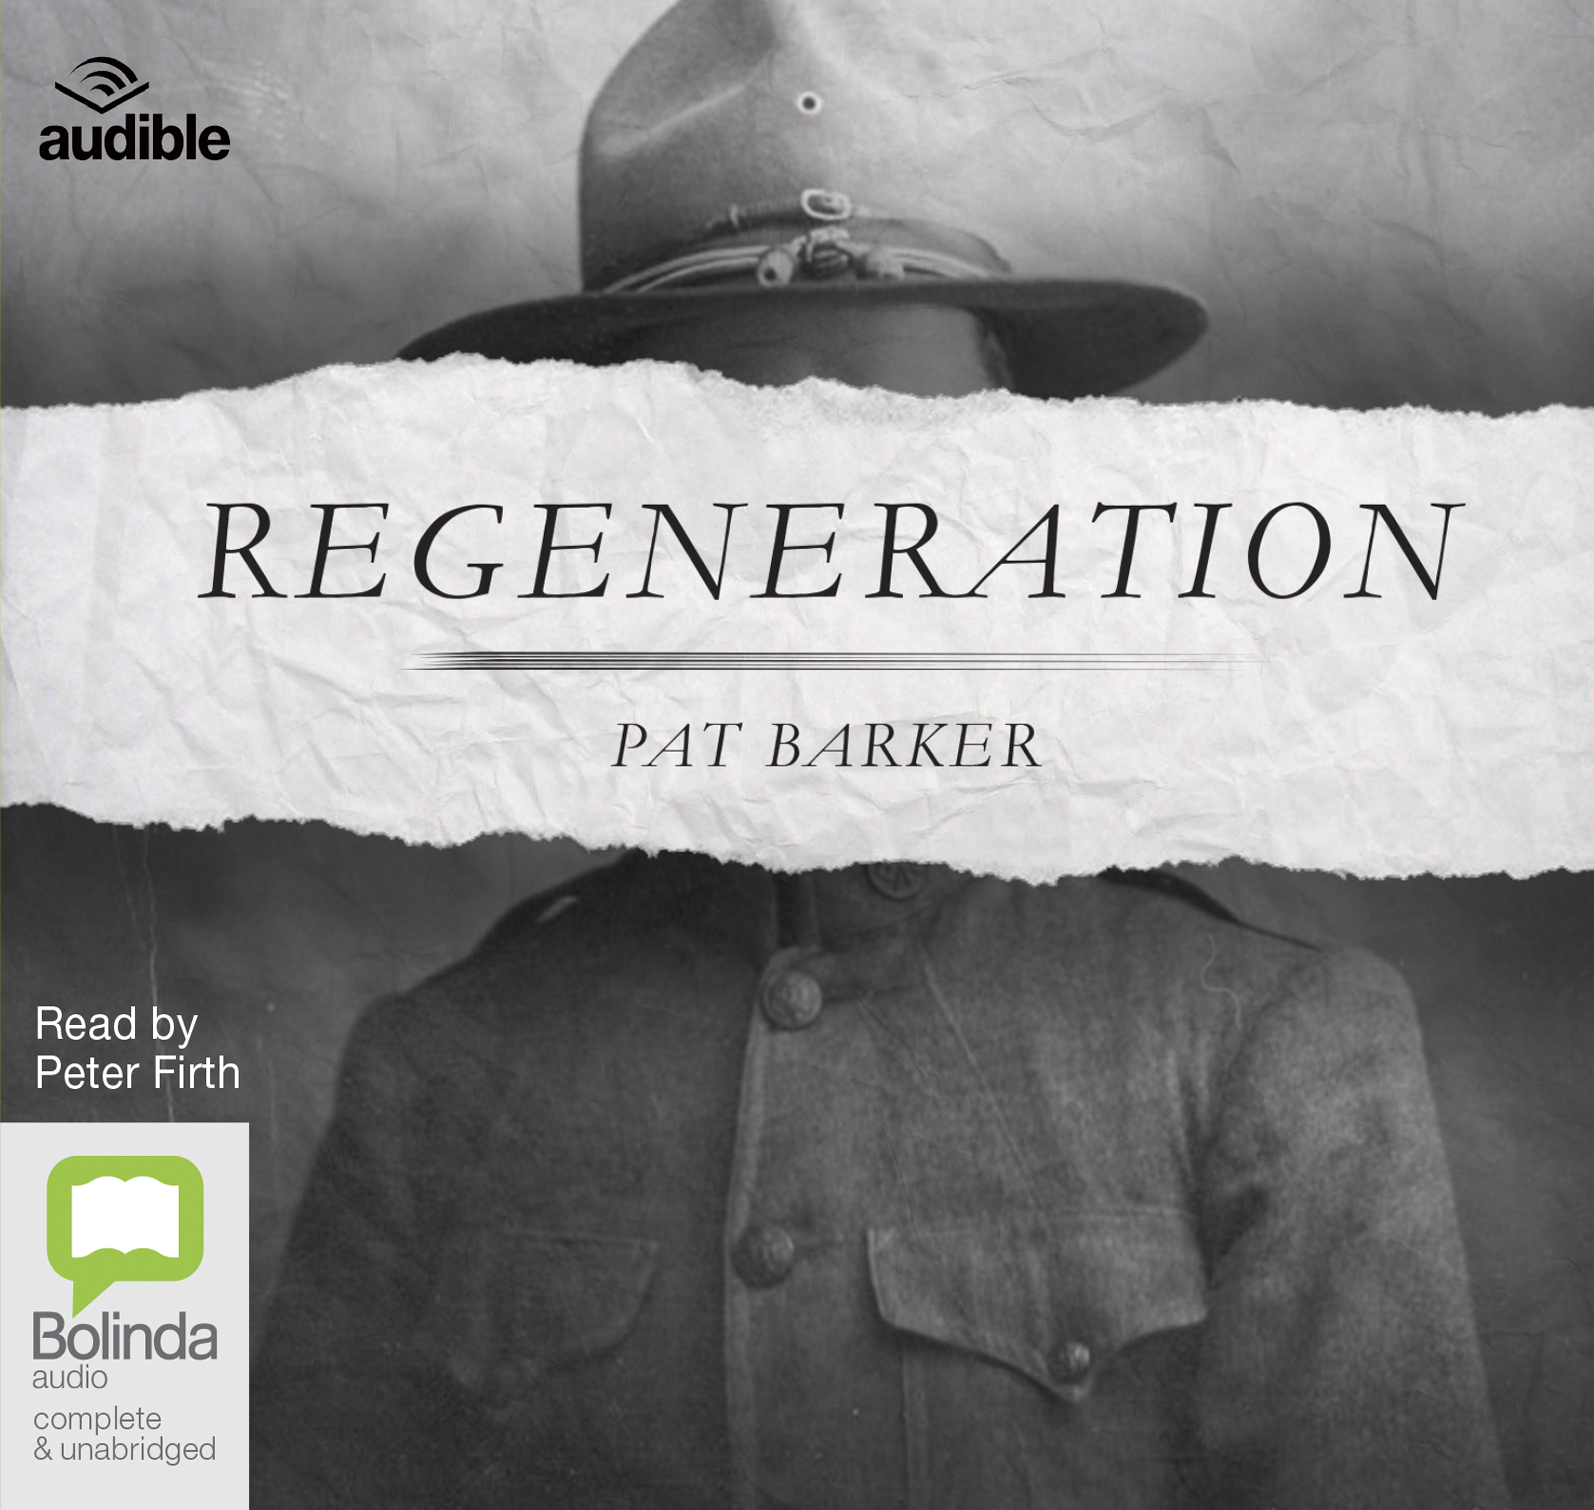 regeneration by pat barker in depth